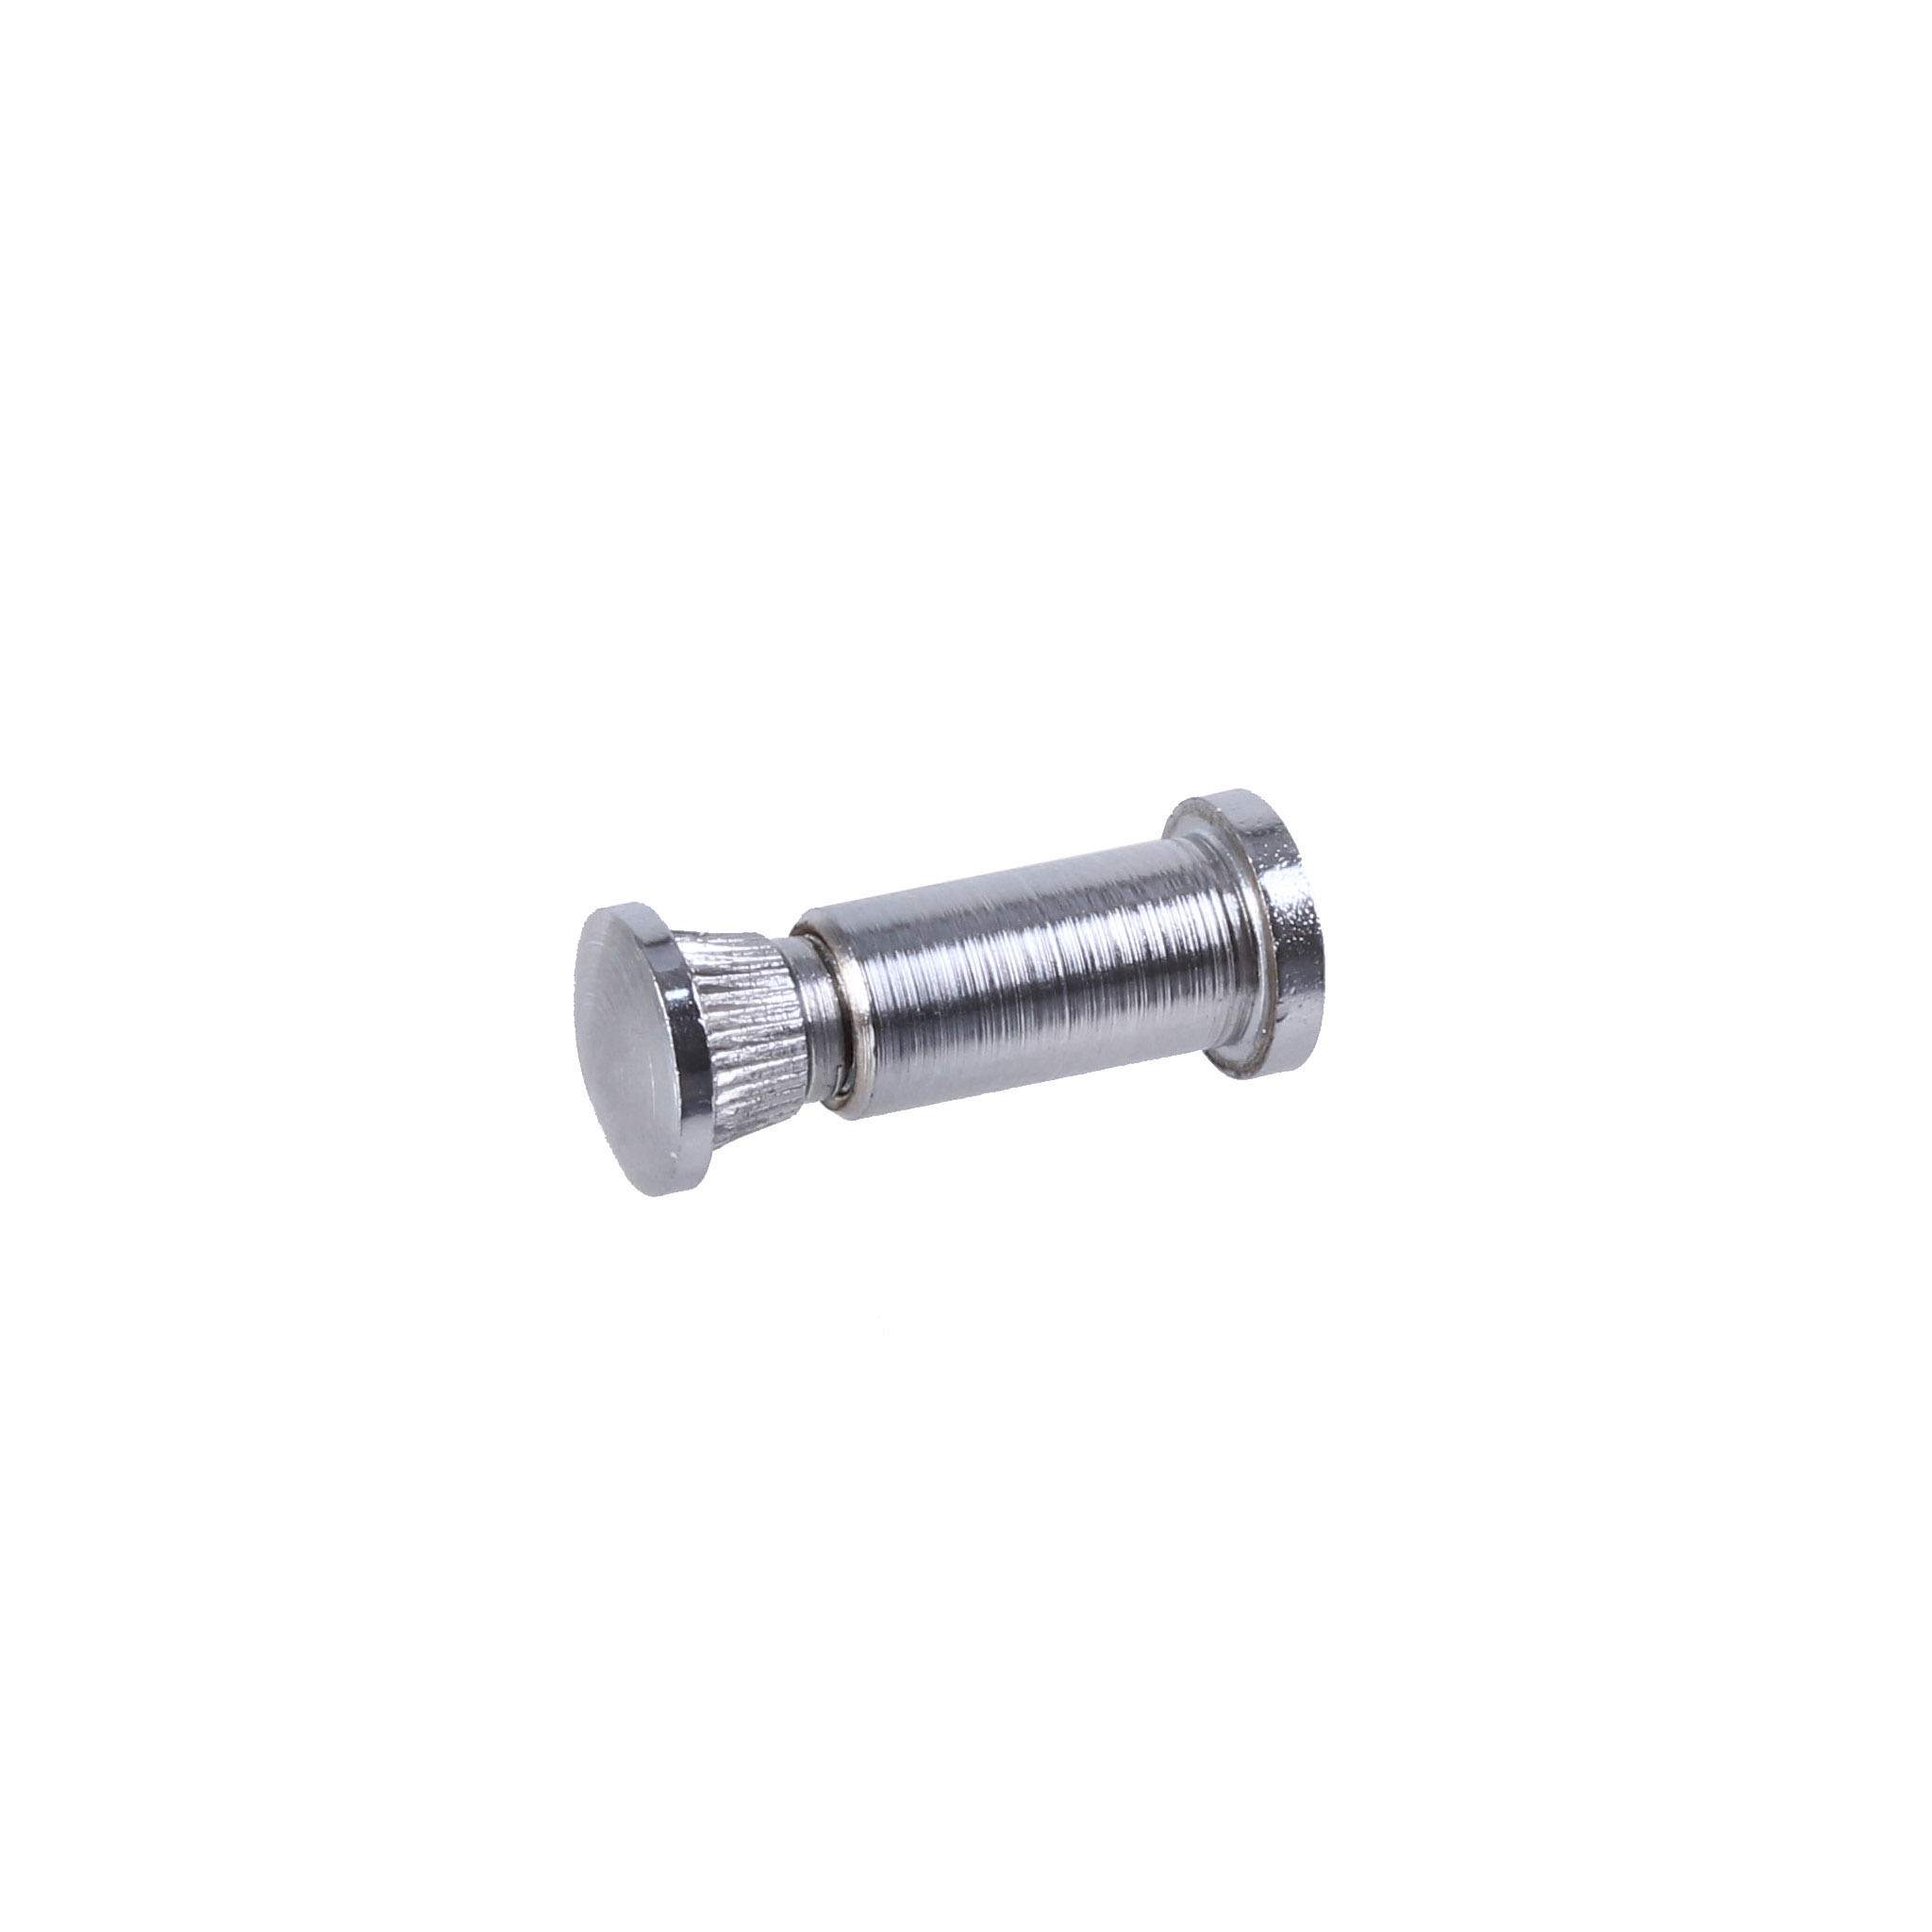 """Cinelli 1A 1"""" quill stem replacement handlebar clamp bolt"""